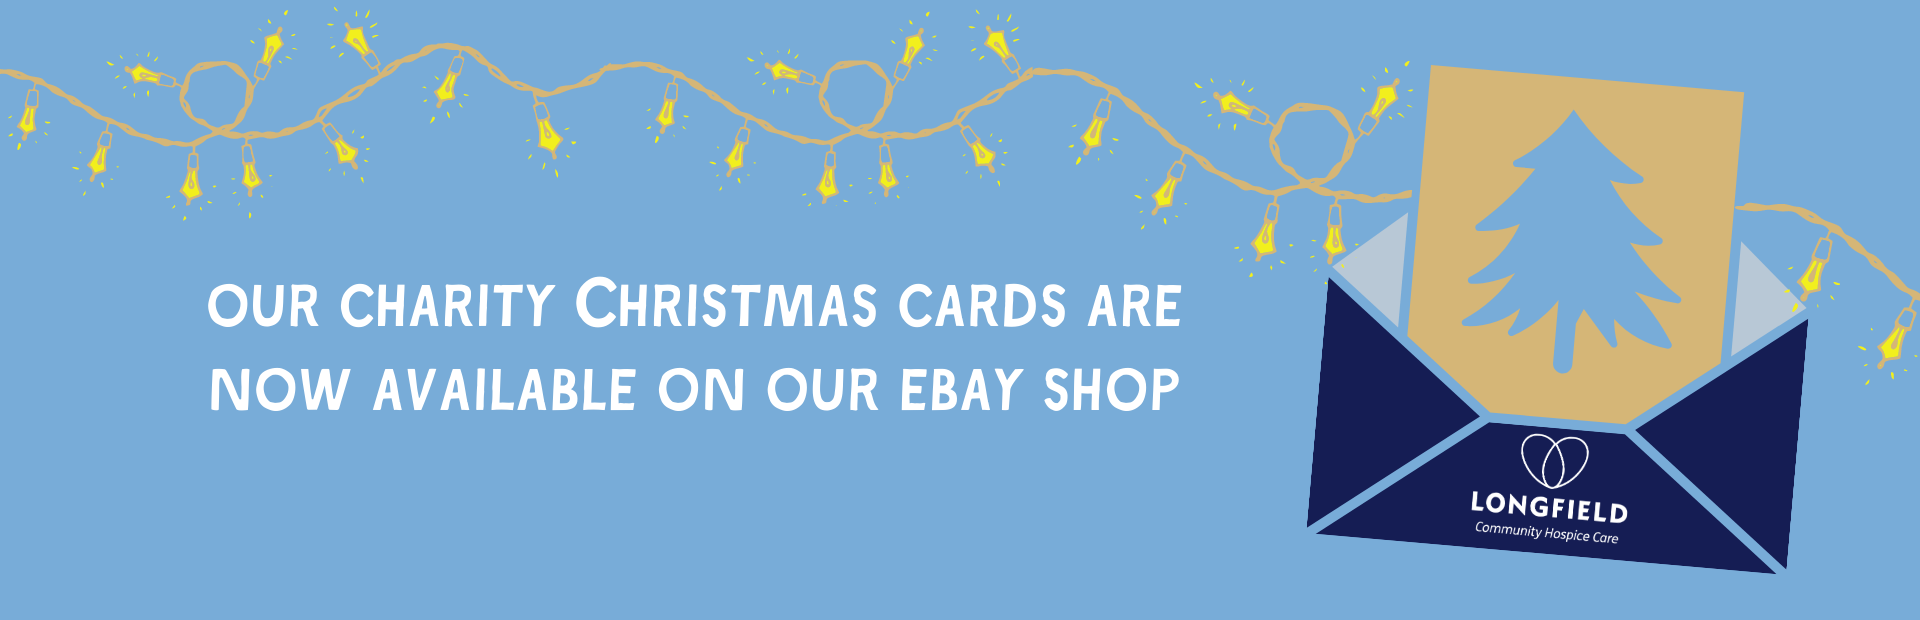 Christmas cards are now available on eBay